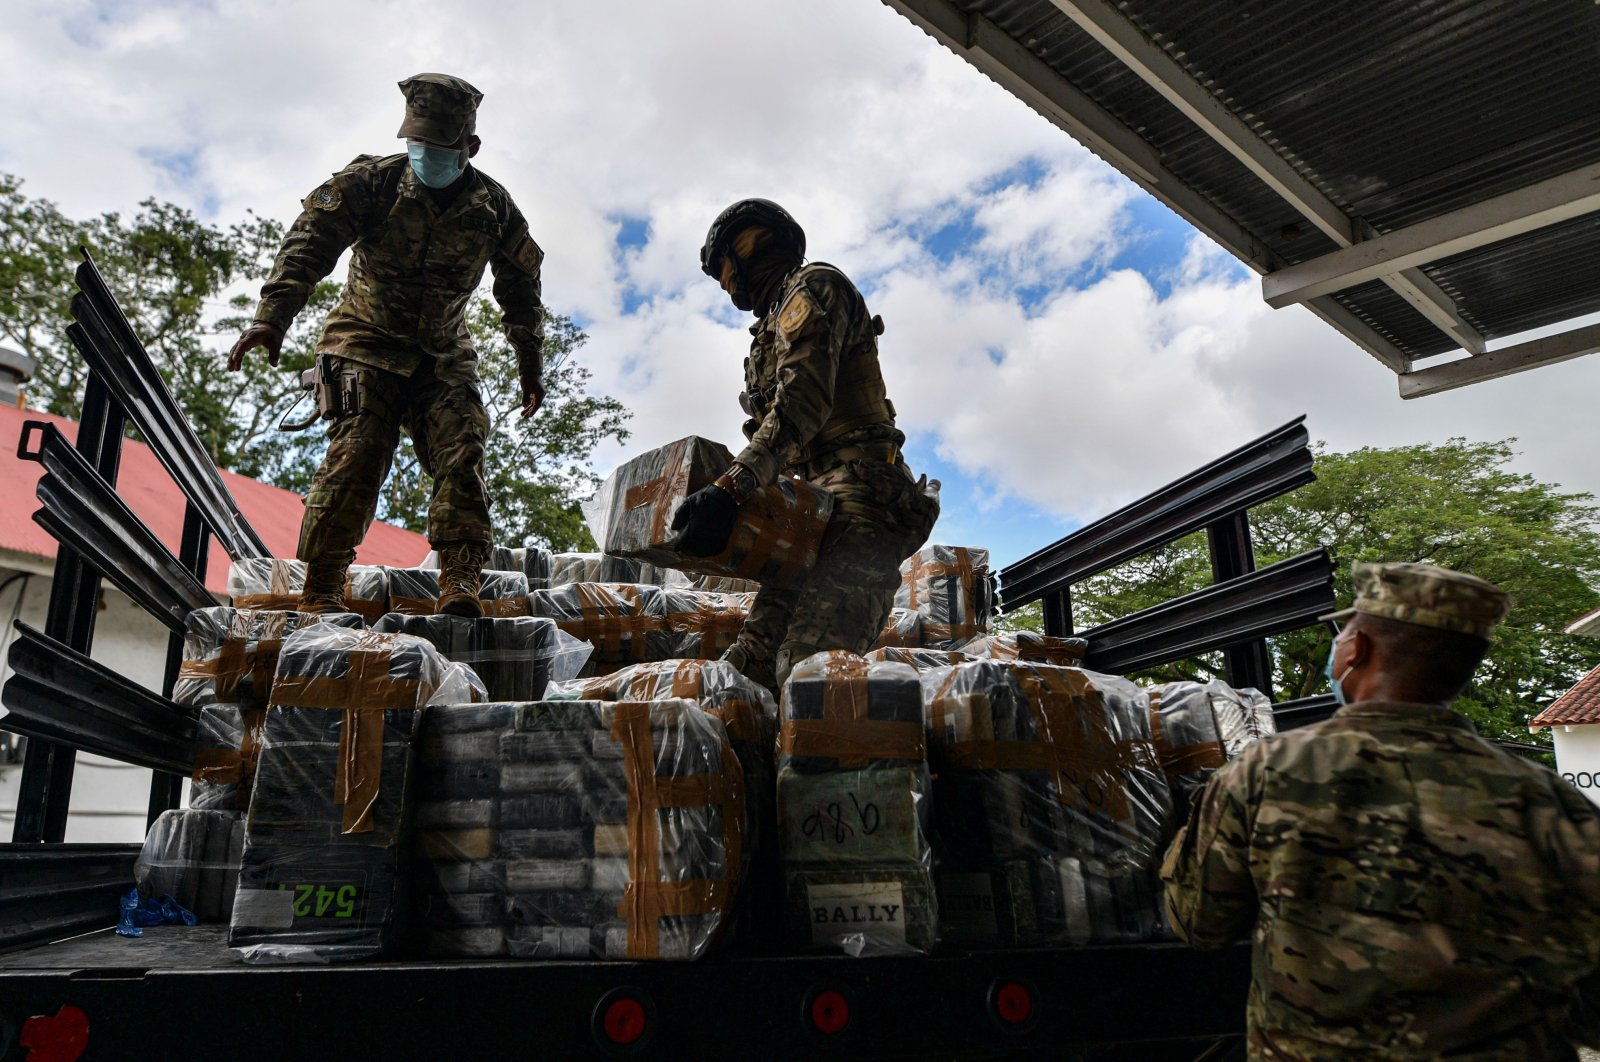 Members of Panama's National Aeronaval Service (SENAN) organize seized packages of cocaine during a press conference at the Cocoli SENAN base in Panama City, Sept. 16, 2020. (AFP Photo)